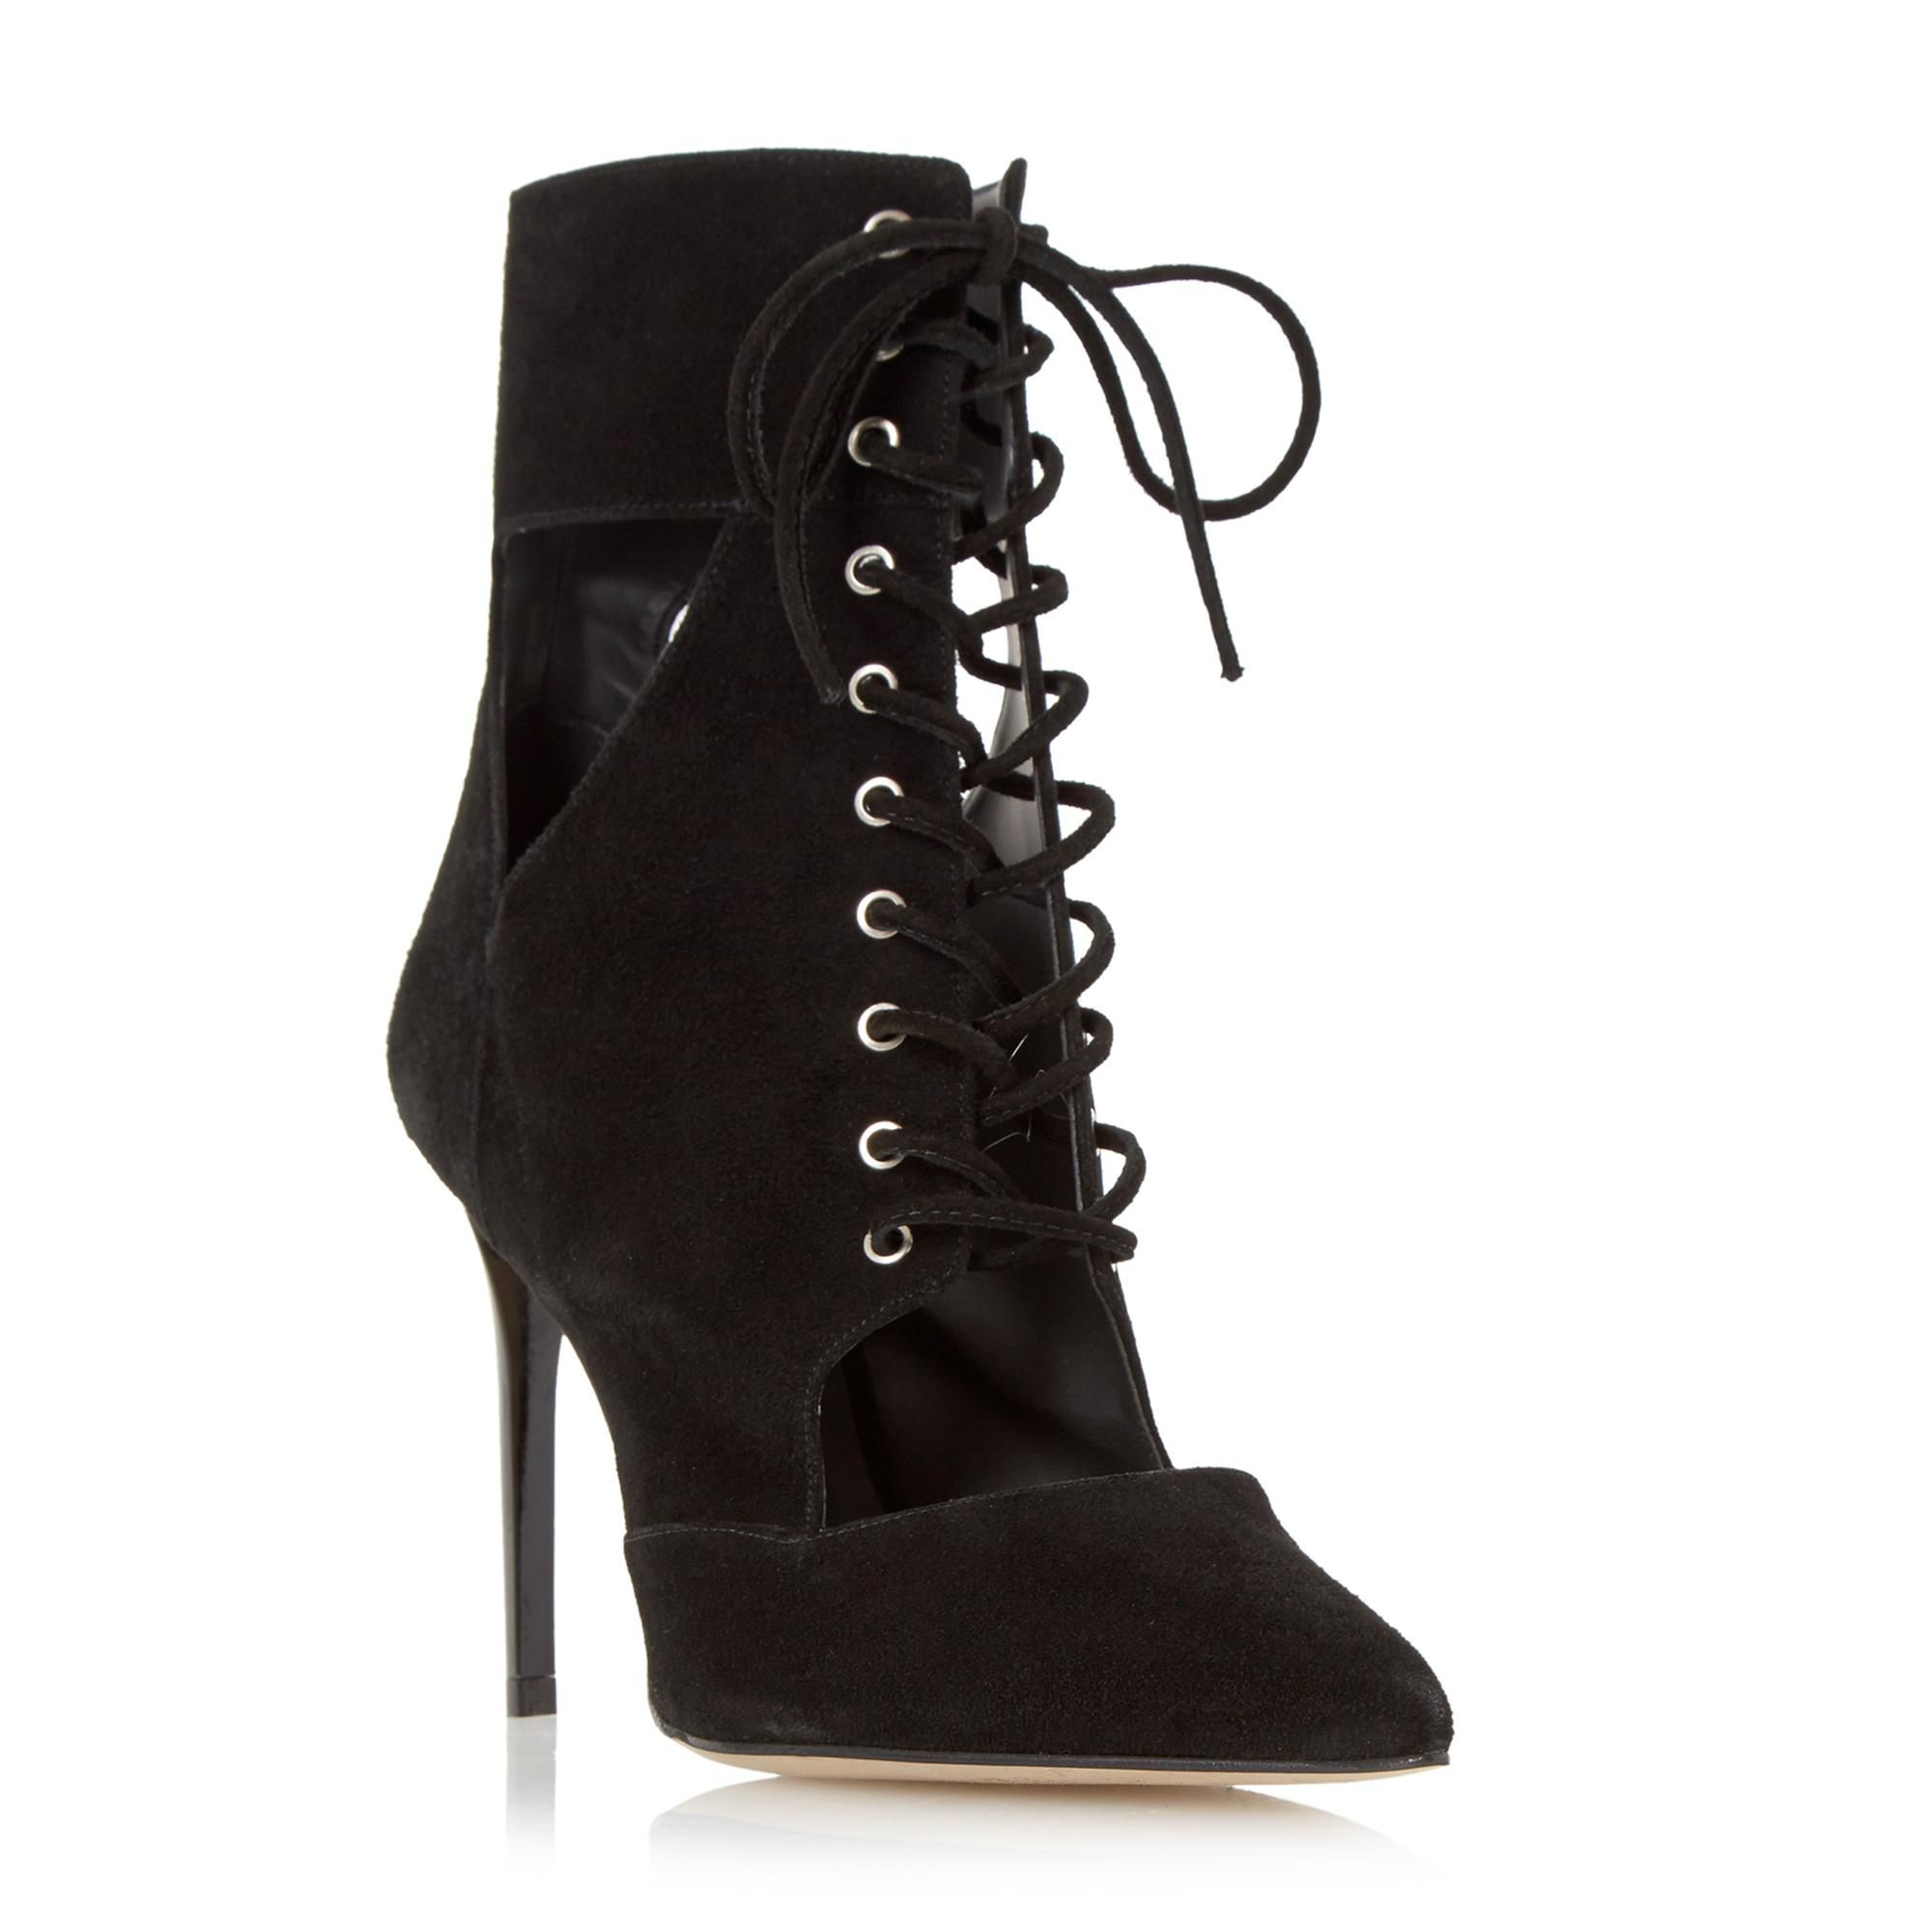 DUNE LADIES OLEA - Suede Lace Up Pointed Toe Ankle Boot - black | Dune Shoes